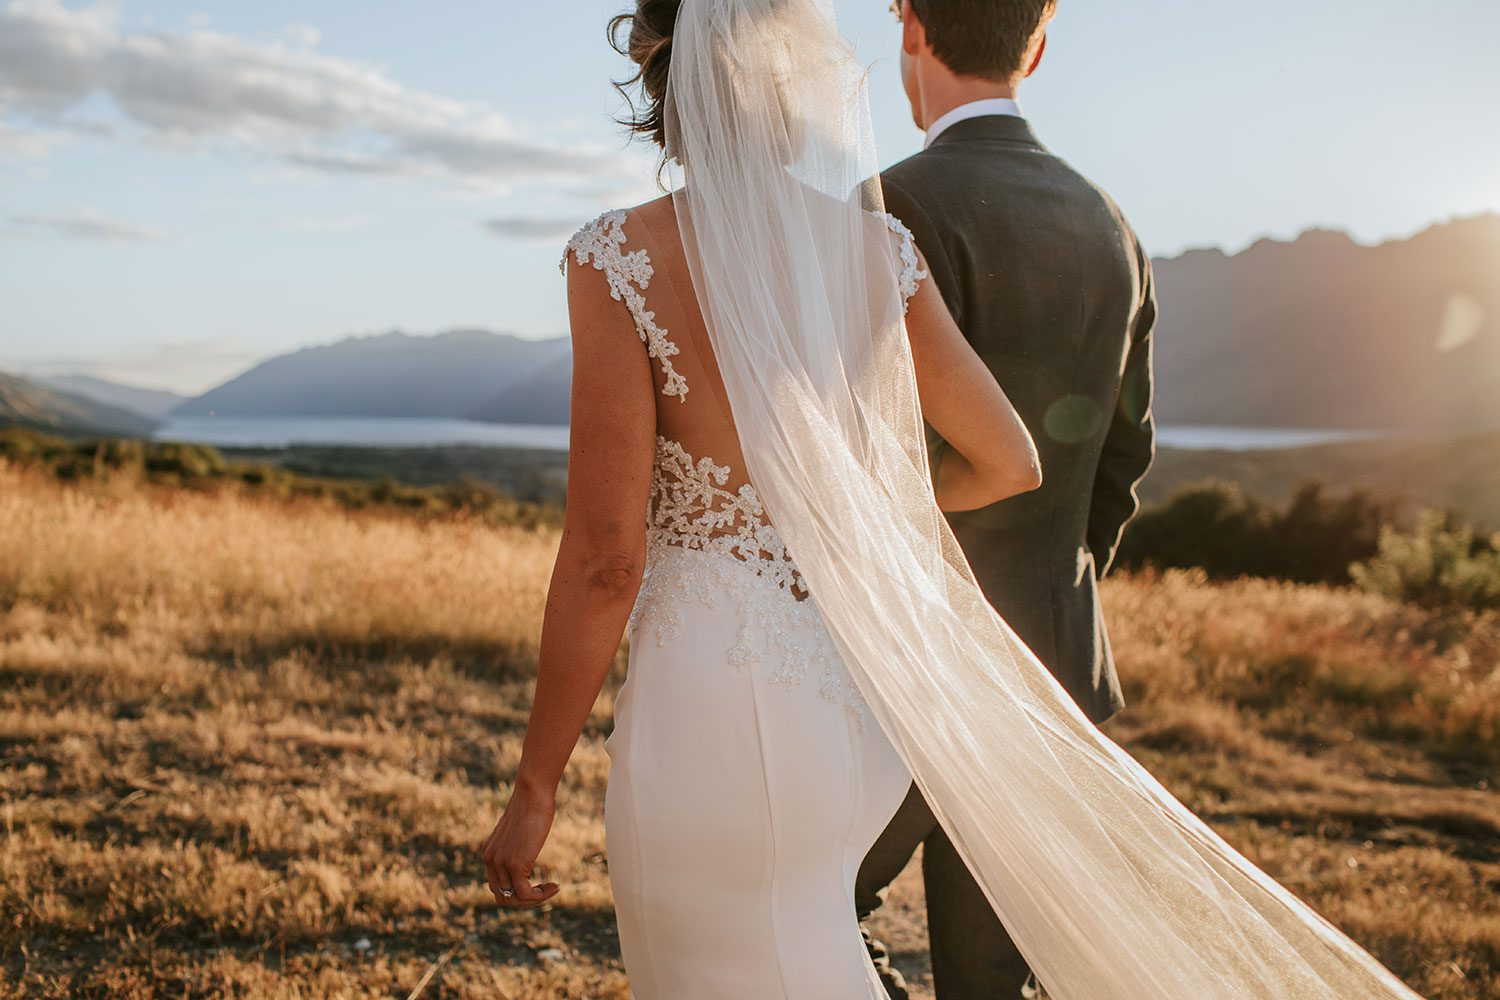 Bride wearing bespoke bridal gown with richly beaded lace over sheer tulle bodice and low back from Auckland wedding dress designer Vinka designs - with groom in field close up of back